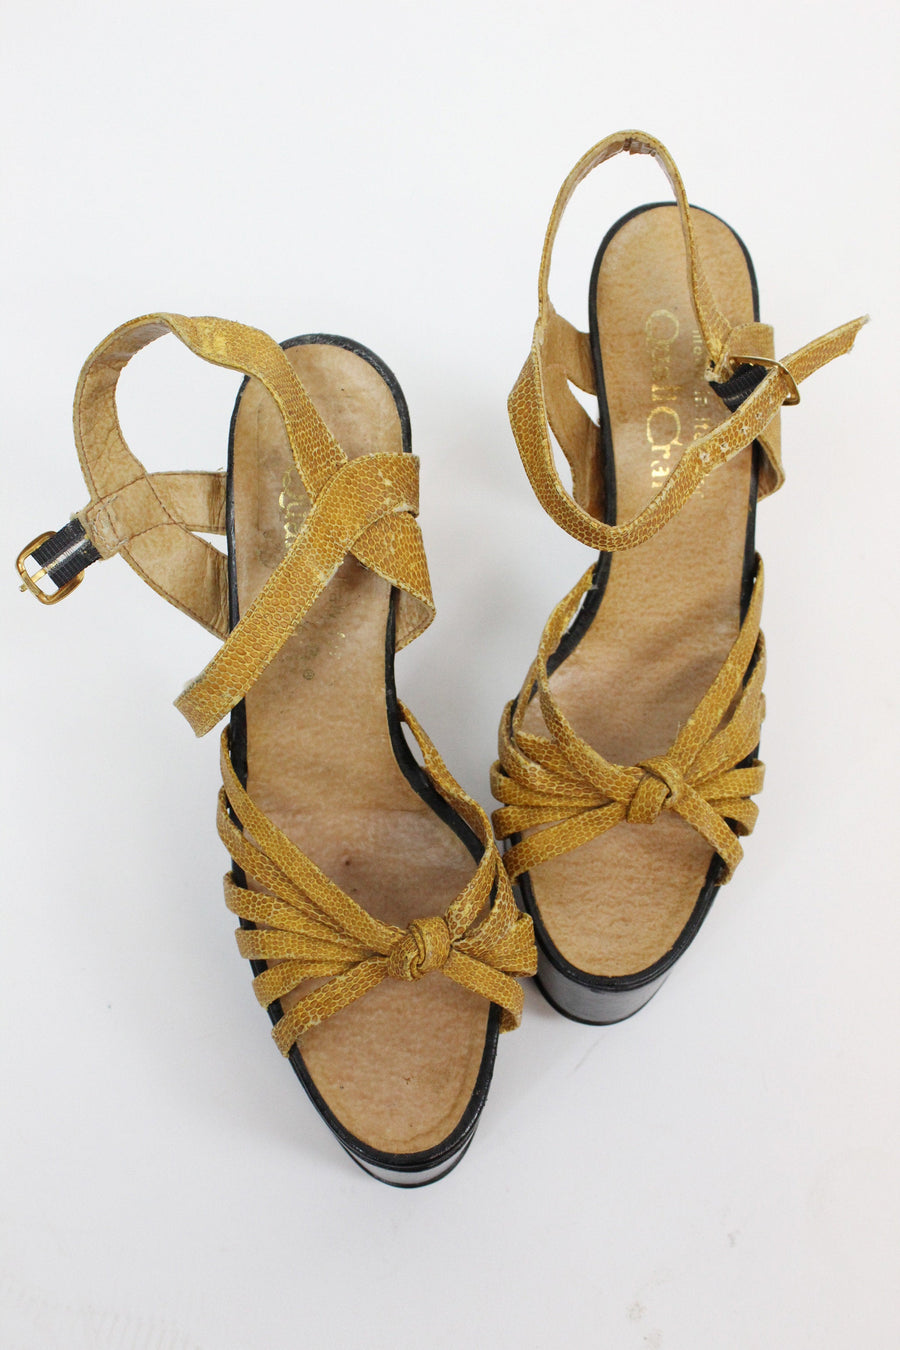 1970s platform sandals shoes size 8 us | vintage mega platforms | new in